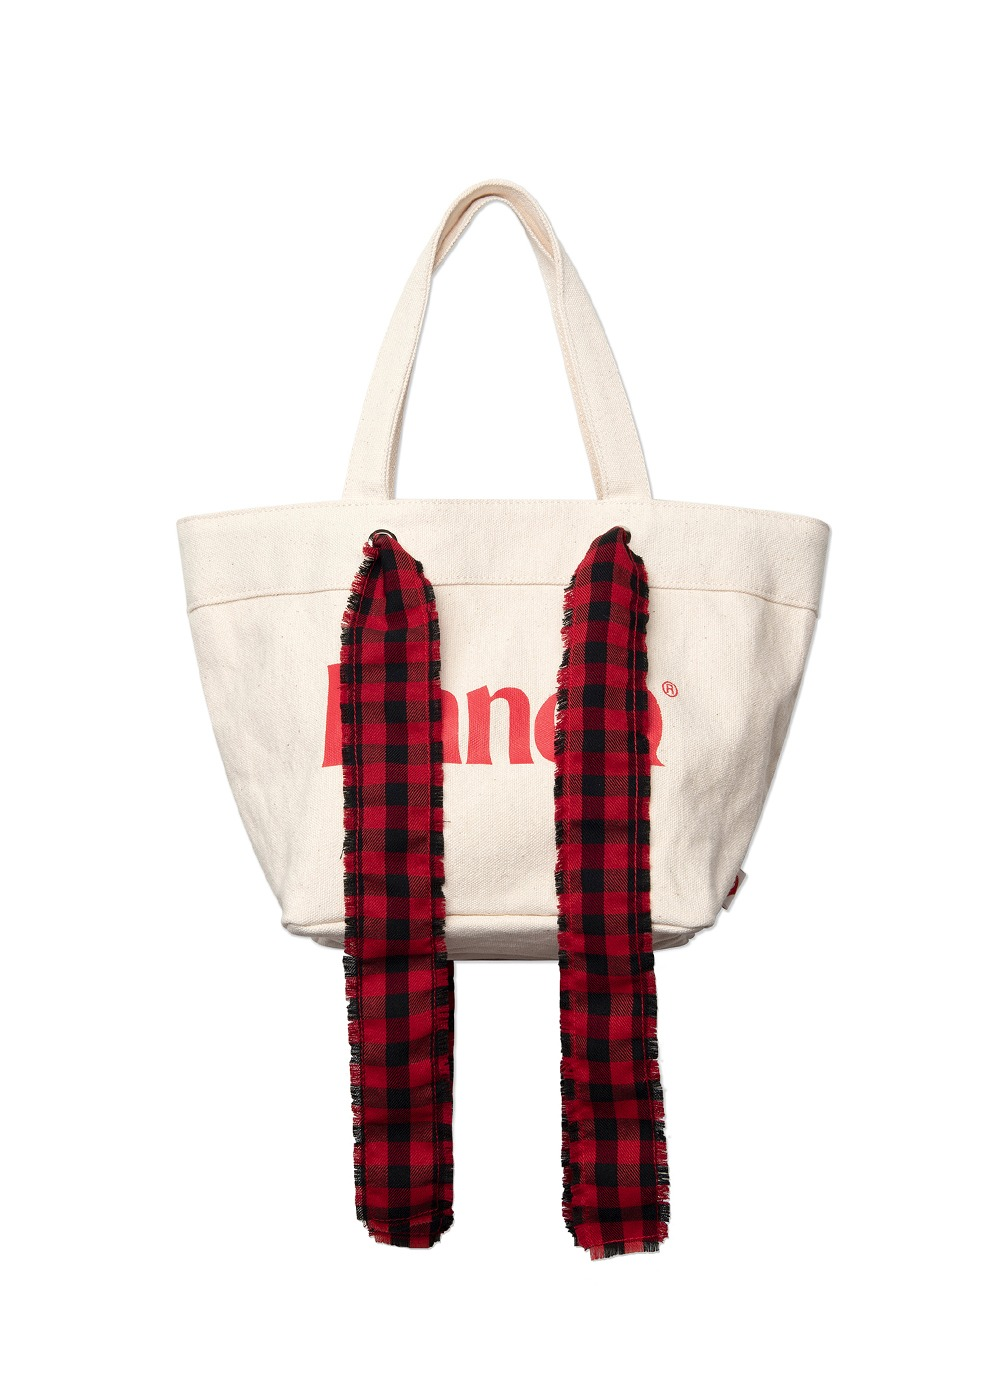 KANCO CHECK STRAP CANVAS TOTE BAG ivory